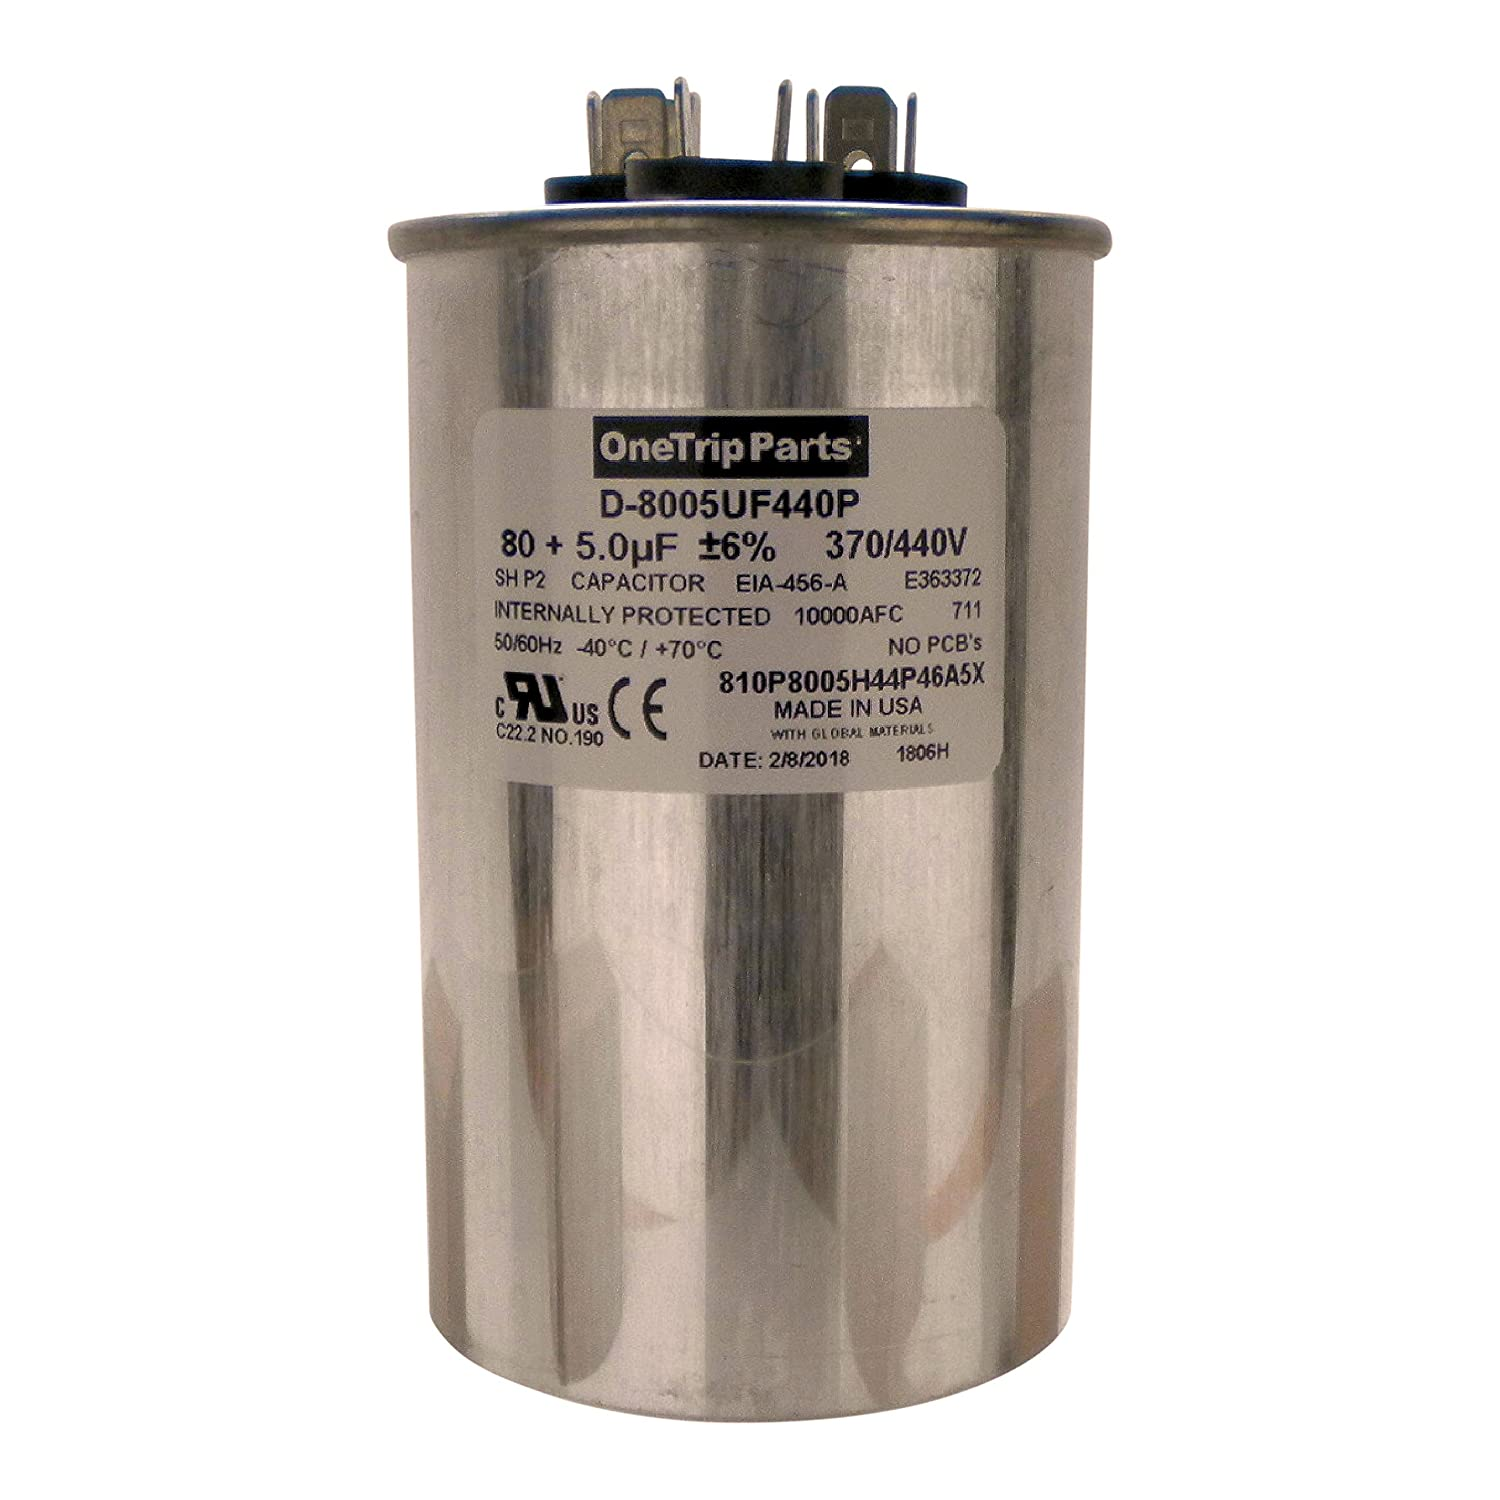 Onetrip Parts Usa Run Capacitor 80 5 Uf Mfd 370 Vac 440 2 Hvac Hard Start Wiring Diagrams 1 Round Heavy Duty Industrial Scientific